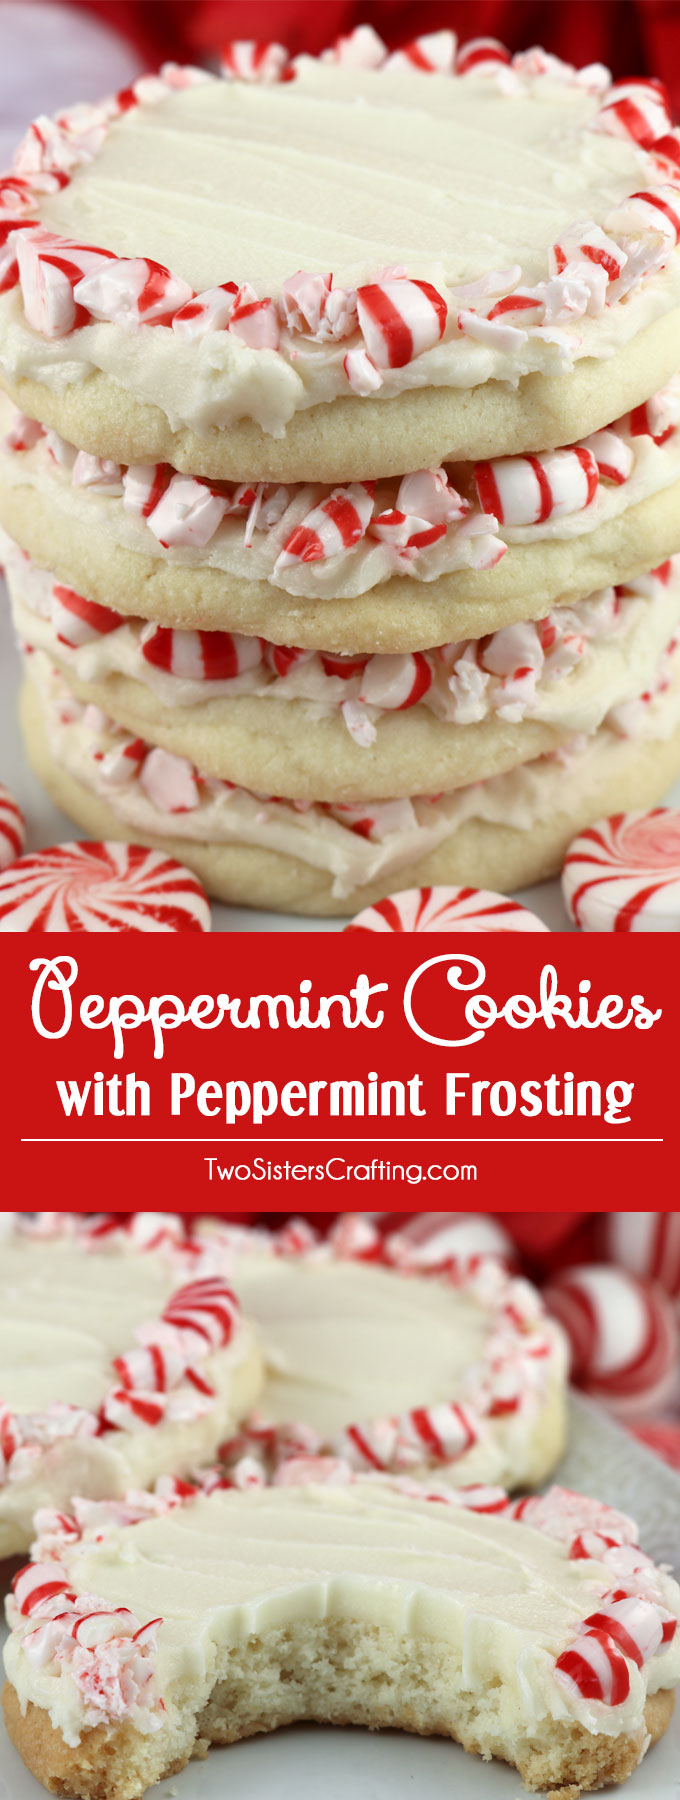 peppermint cookies with peppermint frosting this light and buttery peppermint cookie topped with delicious peppermint